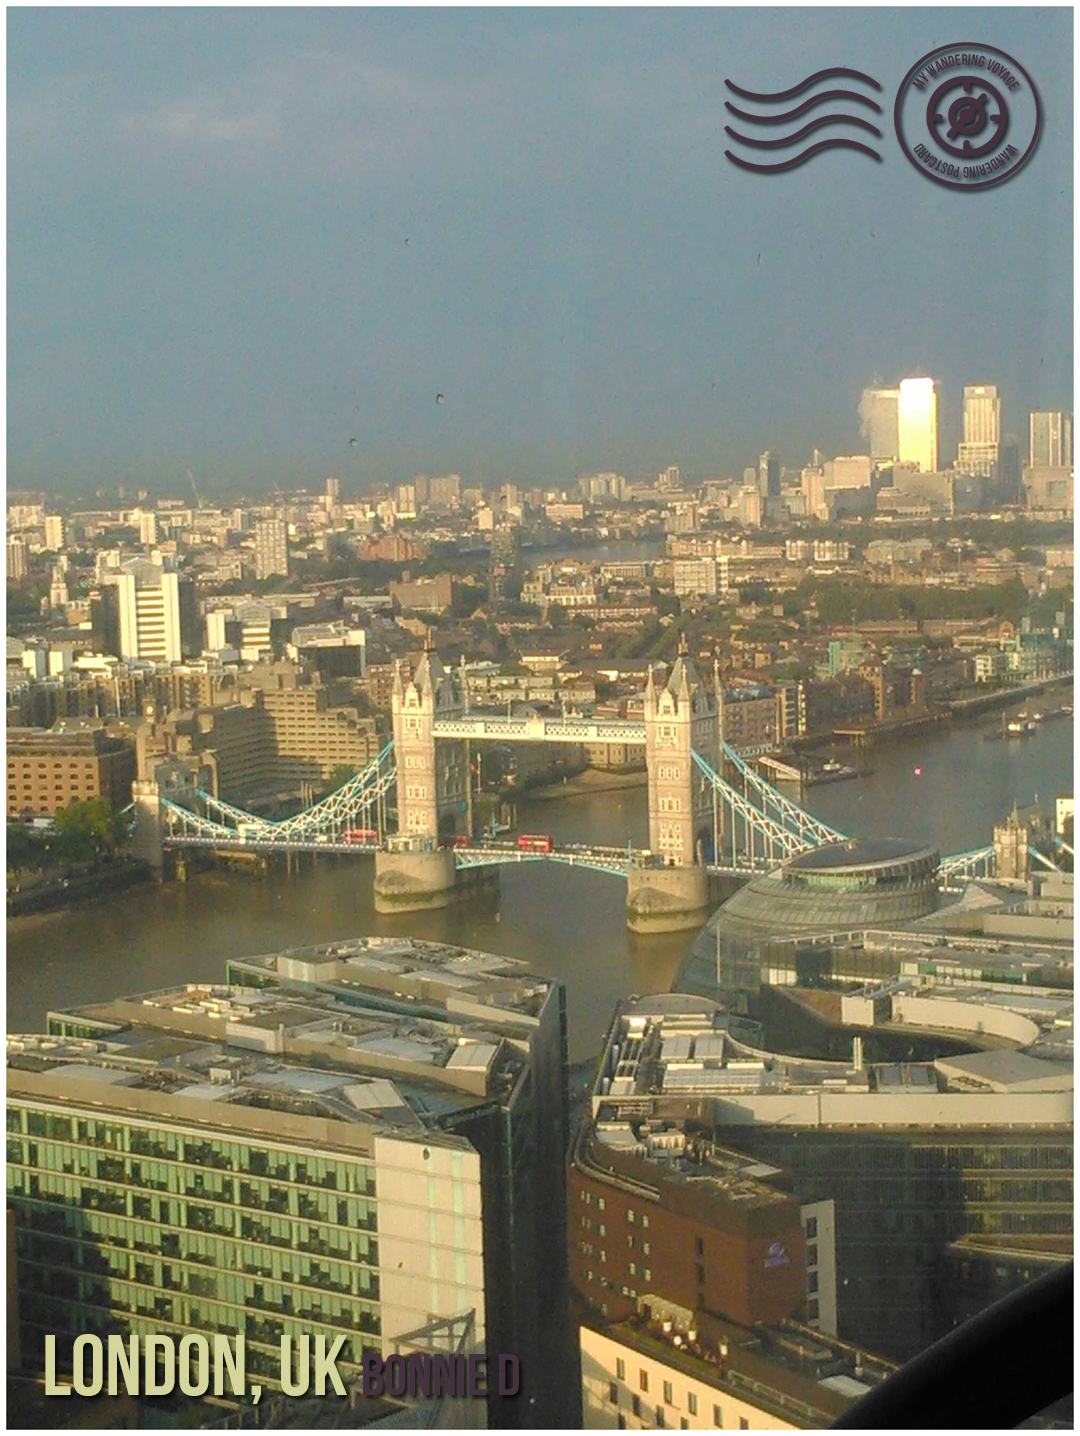 London, UK - Wandering postcard - postcards from around the world  My Wandering Voyage travel blog